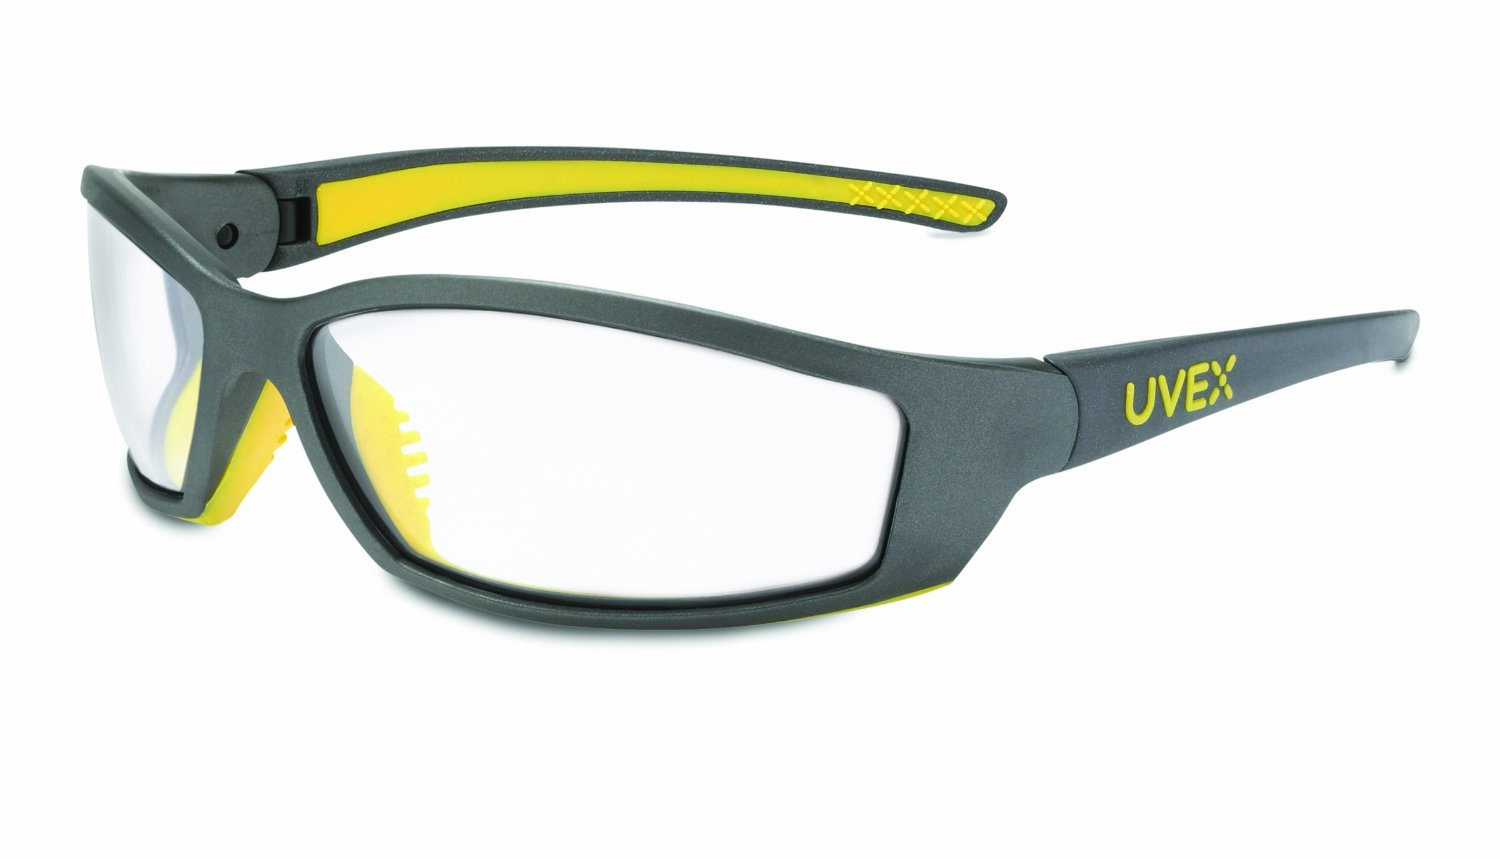 Uvex SolarPro Safety Eyewear with a Super Cool Gray and Yellow Frame